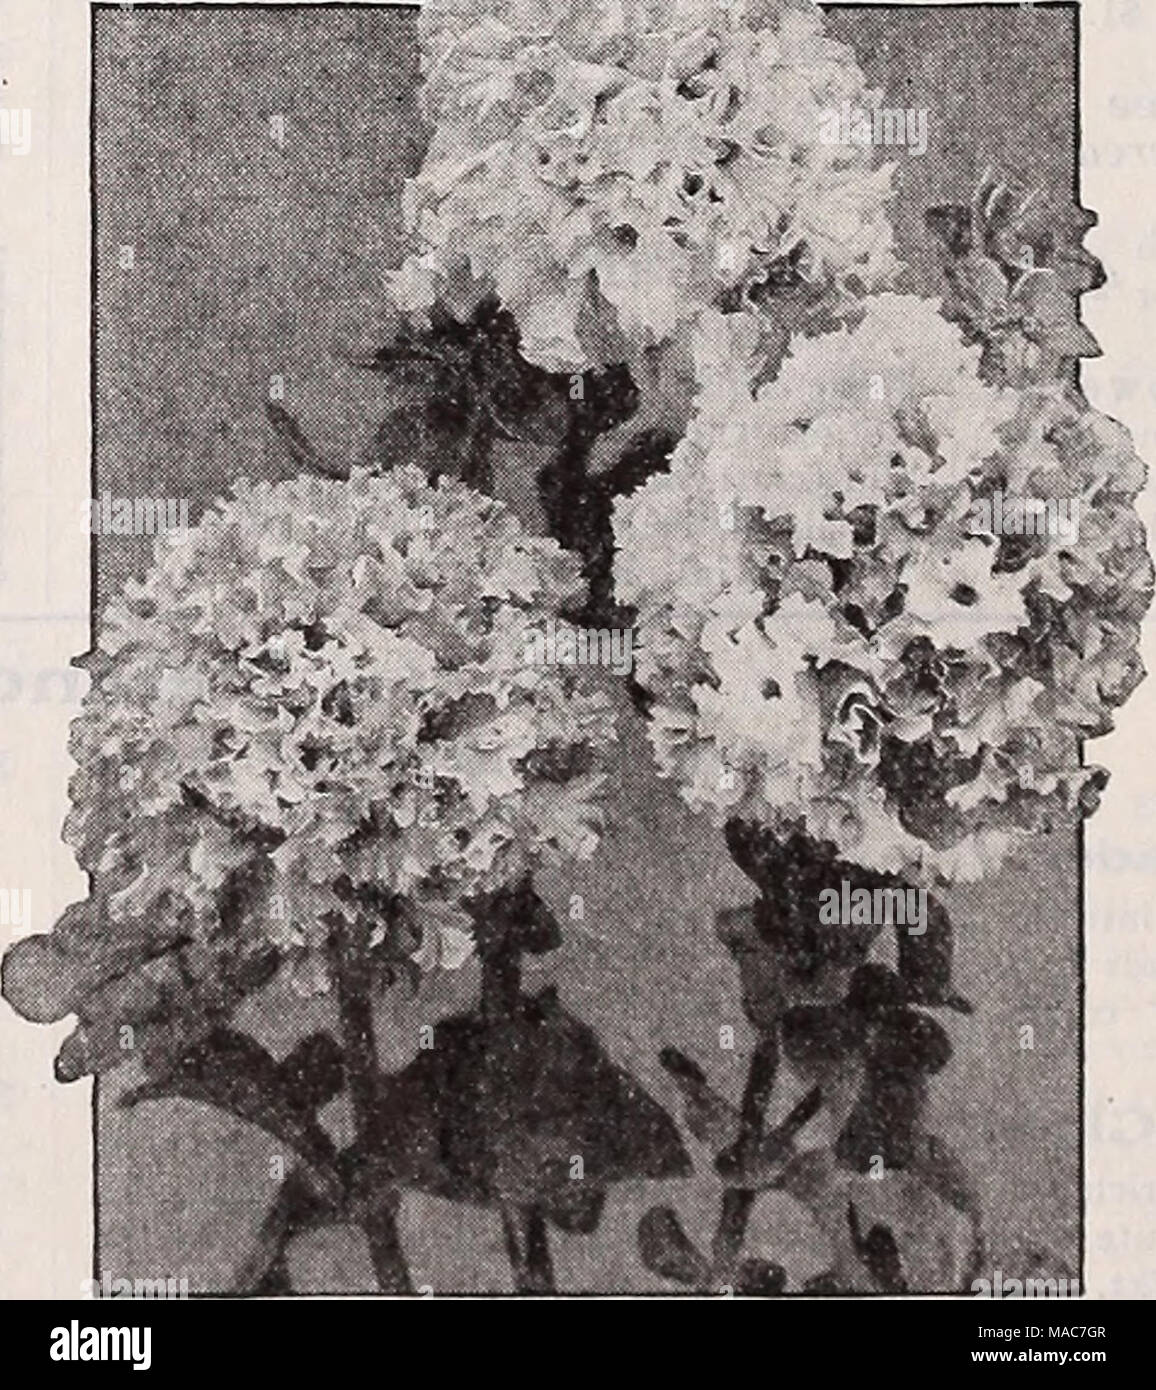 . Dreer's novelties and specialties 1939 : 101 years of Dreer quality seeds plants bulbs . Alldouble Dwarf V'ictorious Petunias 3401 Amaranth Red. An extra dwarf variety with alldouble flowers measur- ing 4 inches across. Grows 10 inches tall. Of bright amaranth red color. Pkt. 50c; 500 seeds S2.00. 3403 Carmine Queen {World Beauty). Exceedingly showy, luminous rosy red blooms. 10 inches tall. Pkt. 50c; 500 seeds S2.00. 3404 Daintiness. Charming apple- blossom pink flowers of exquisite double form. Bushy plants growing 12 inches taU. Pkt. 50c; 500 seeds S2.00. 3405 Gaiety. Combines car- mine-r - Stock Image